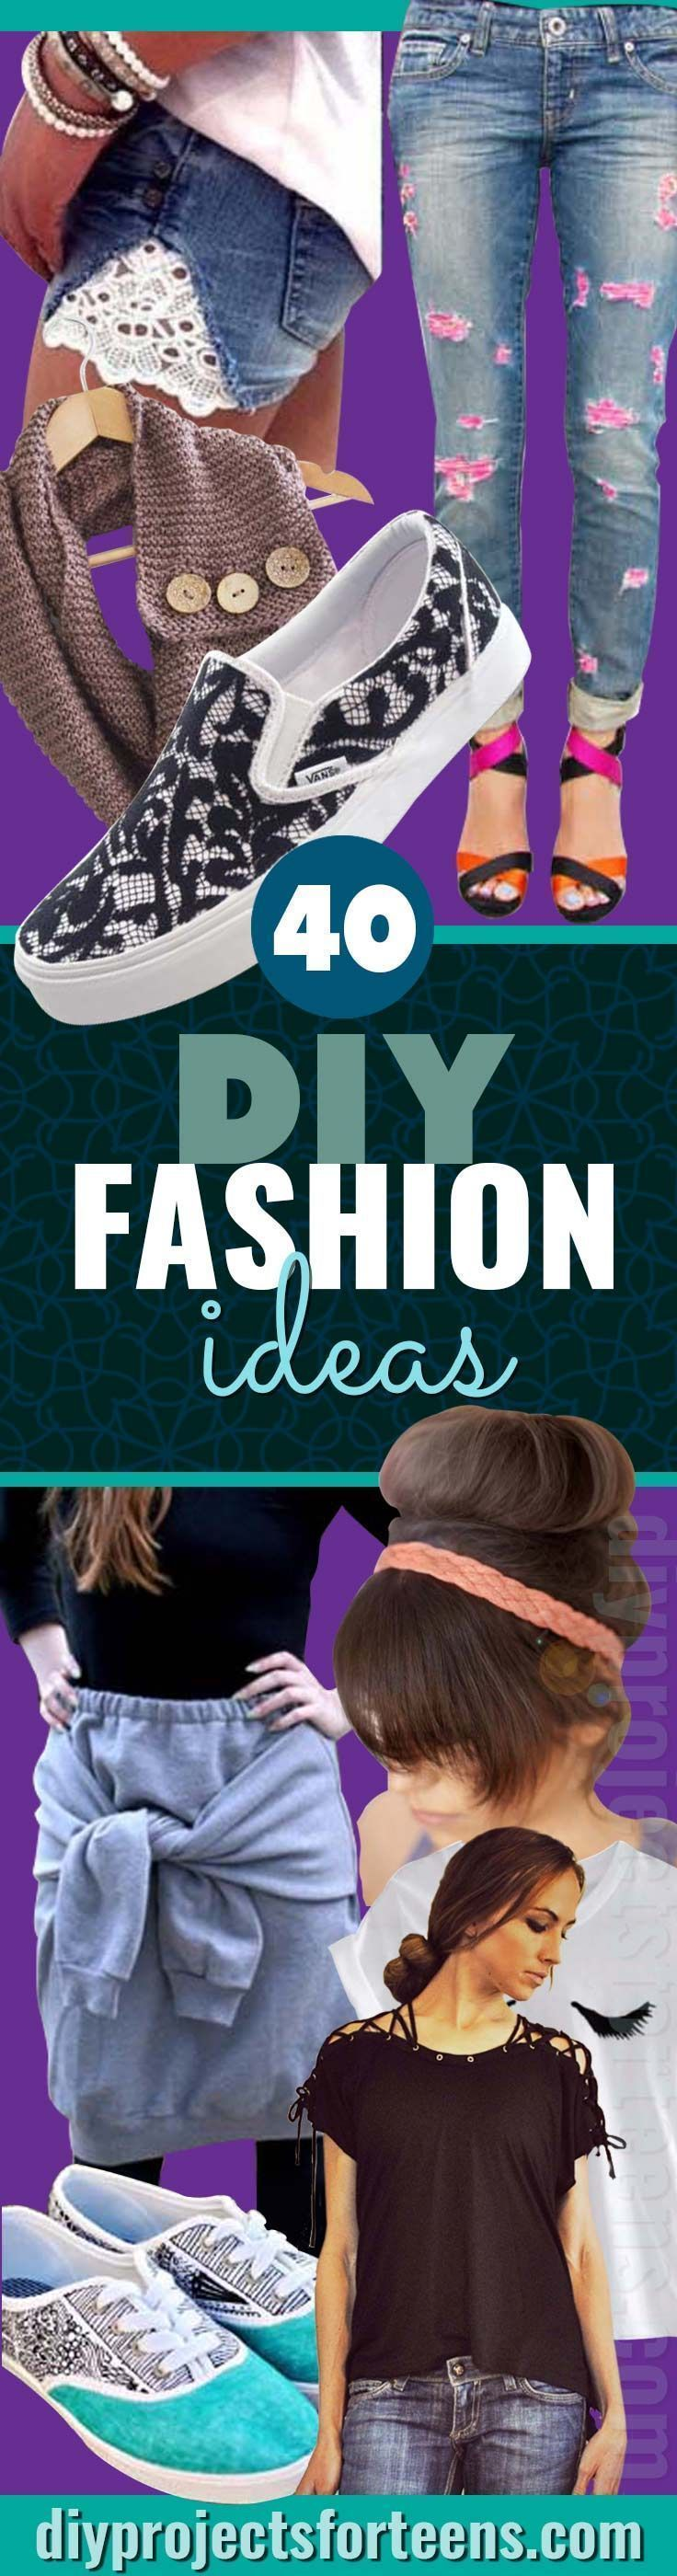 DIY Fashion Projects For Teens - Cool Homemade Clothes Tutorials for Fun Things To Wear. T Shirts, Skirts, Shoes, Shorts, Jeans http://diyprojectsforteens.com/cool-diy-fashion-ideas/